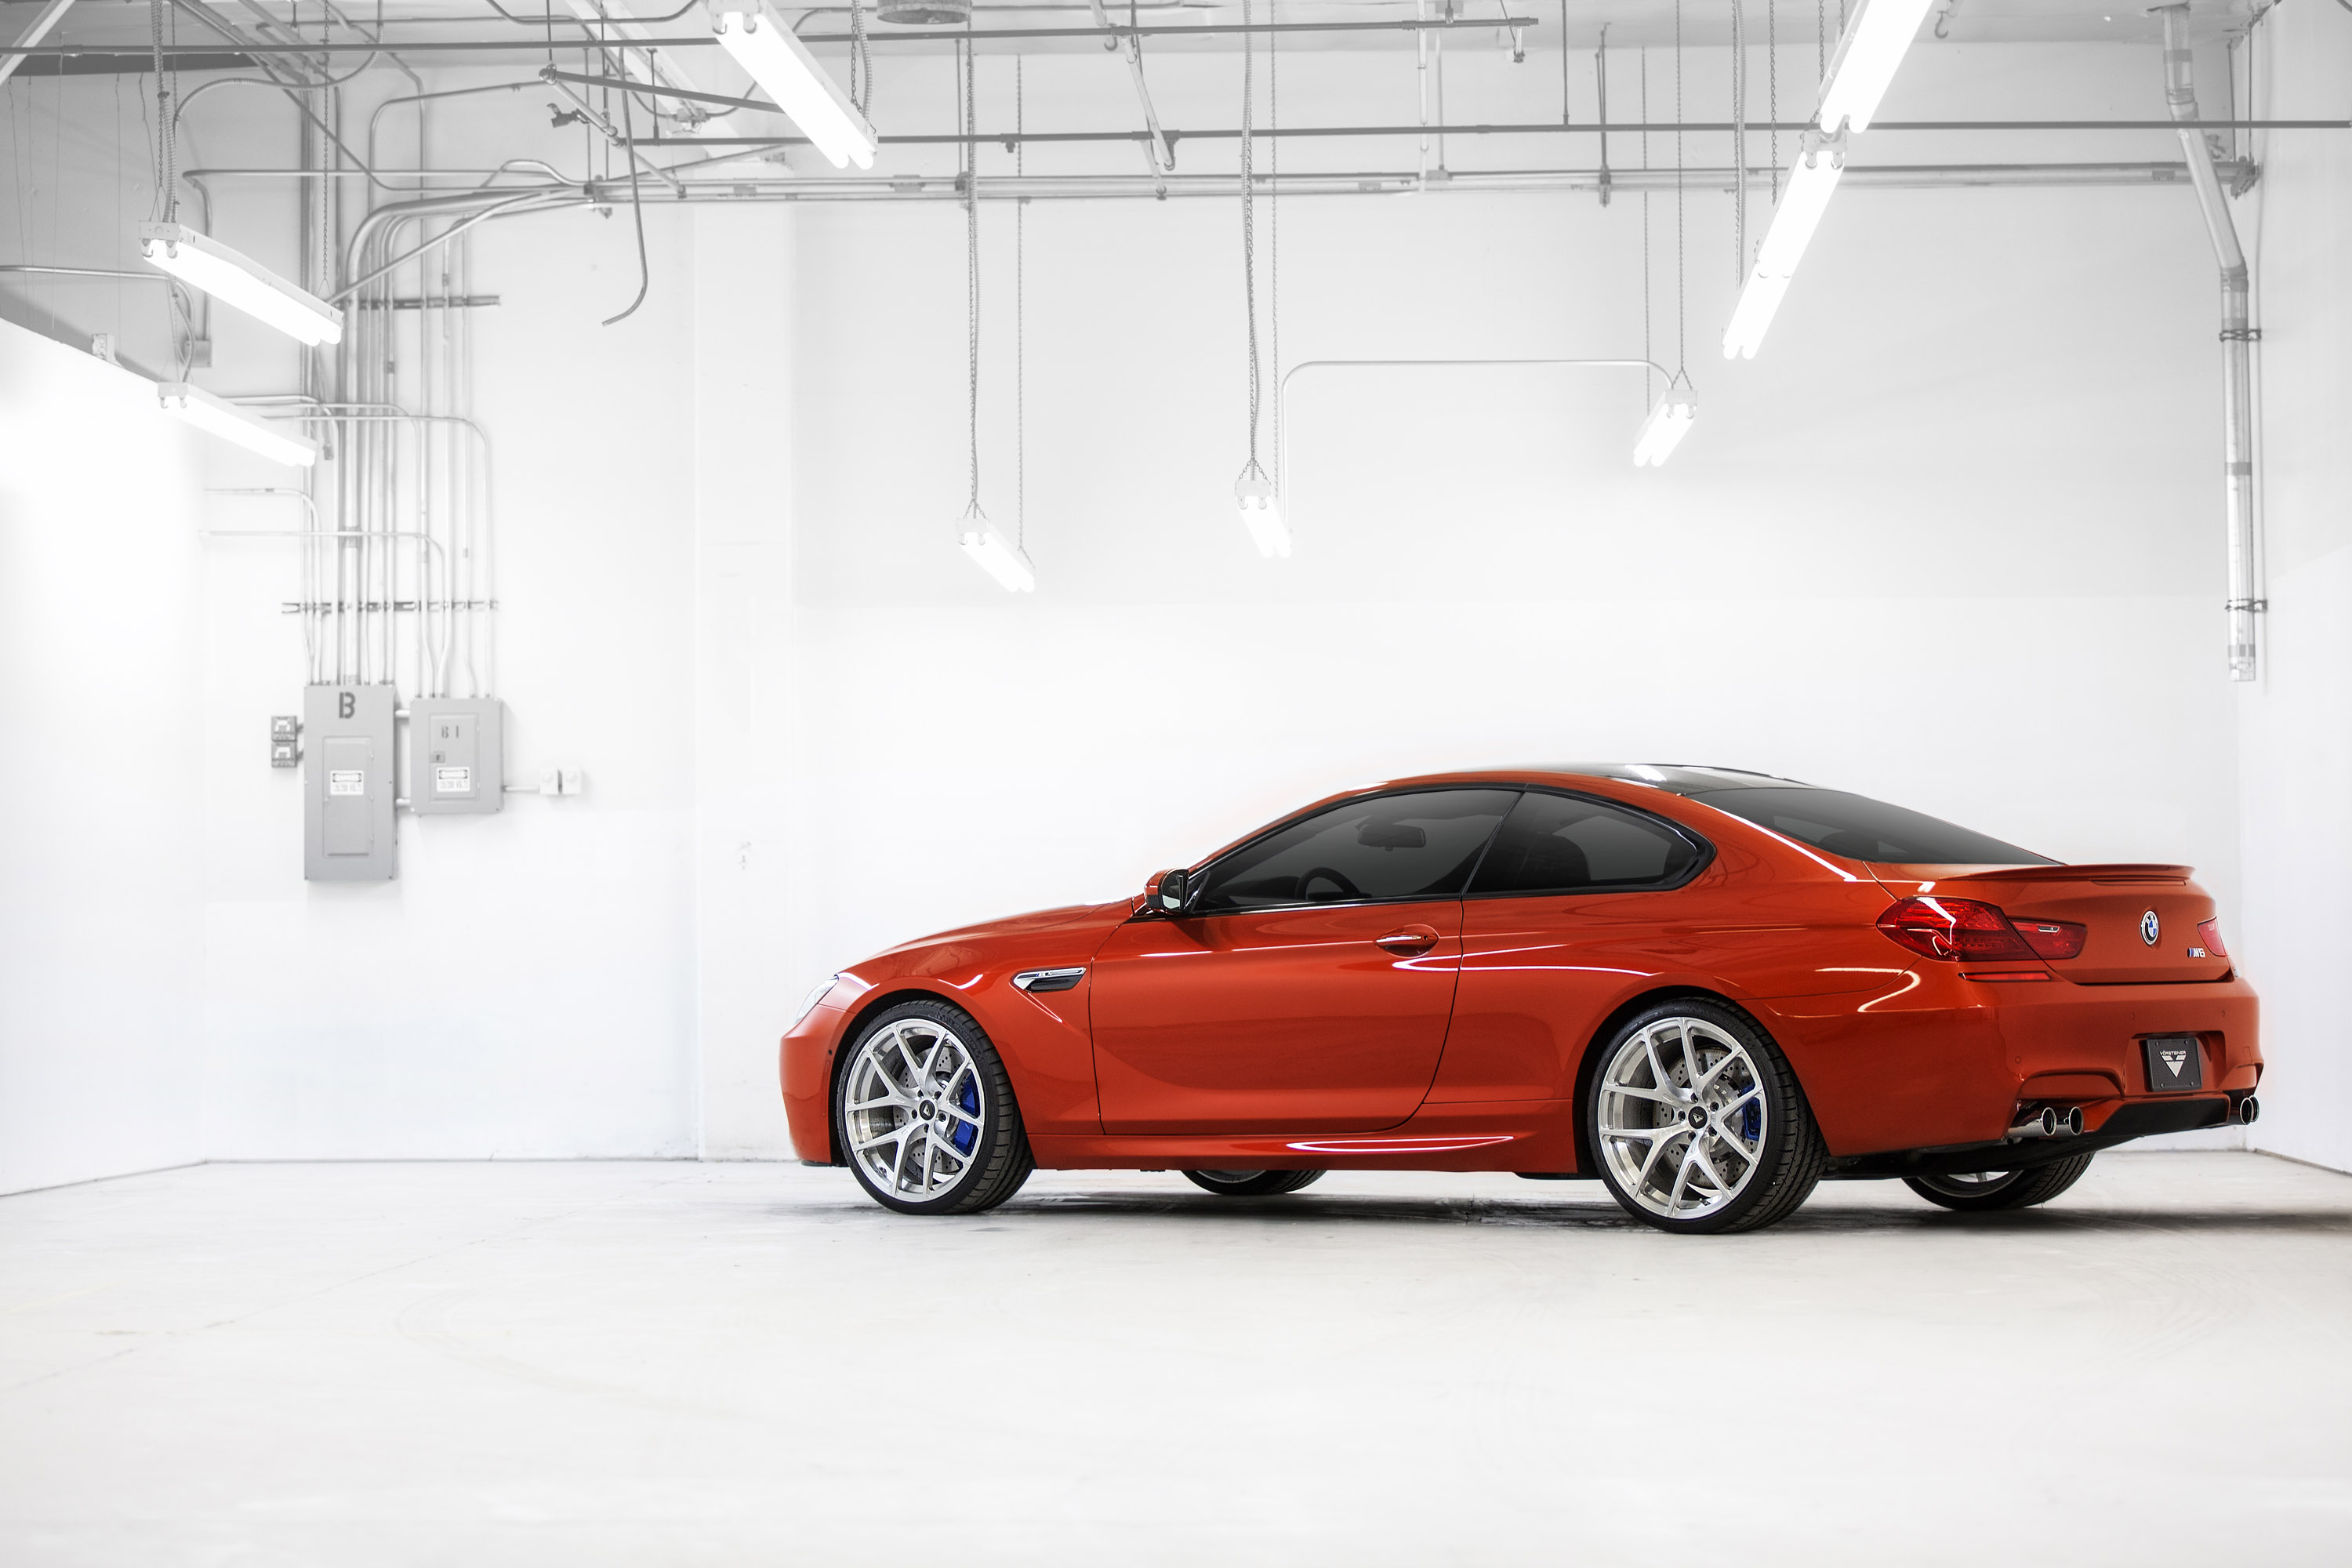 2013_Vorsteiner_BMW_M6_Coupe_VS_110_coupe_tuning_t_3000x2000.jpg